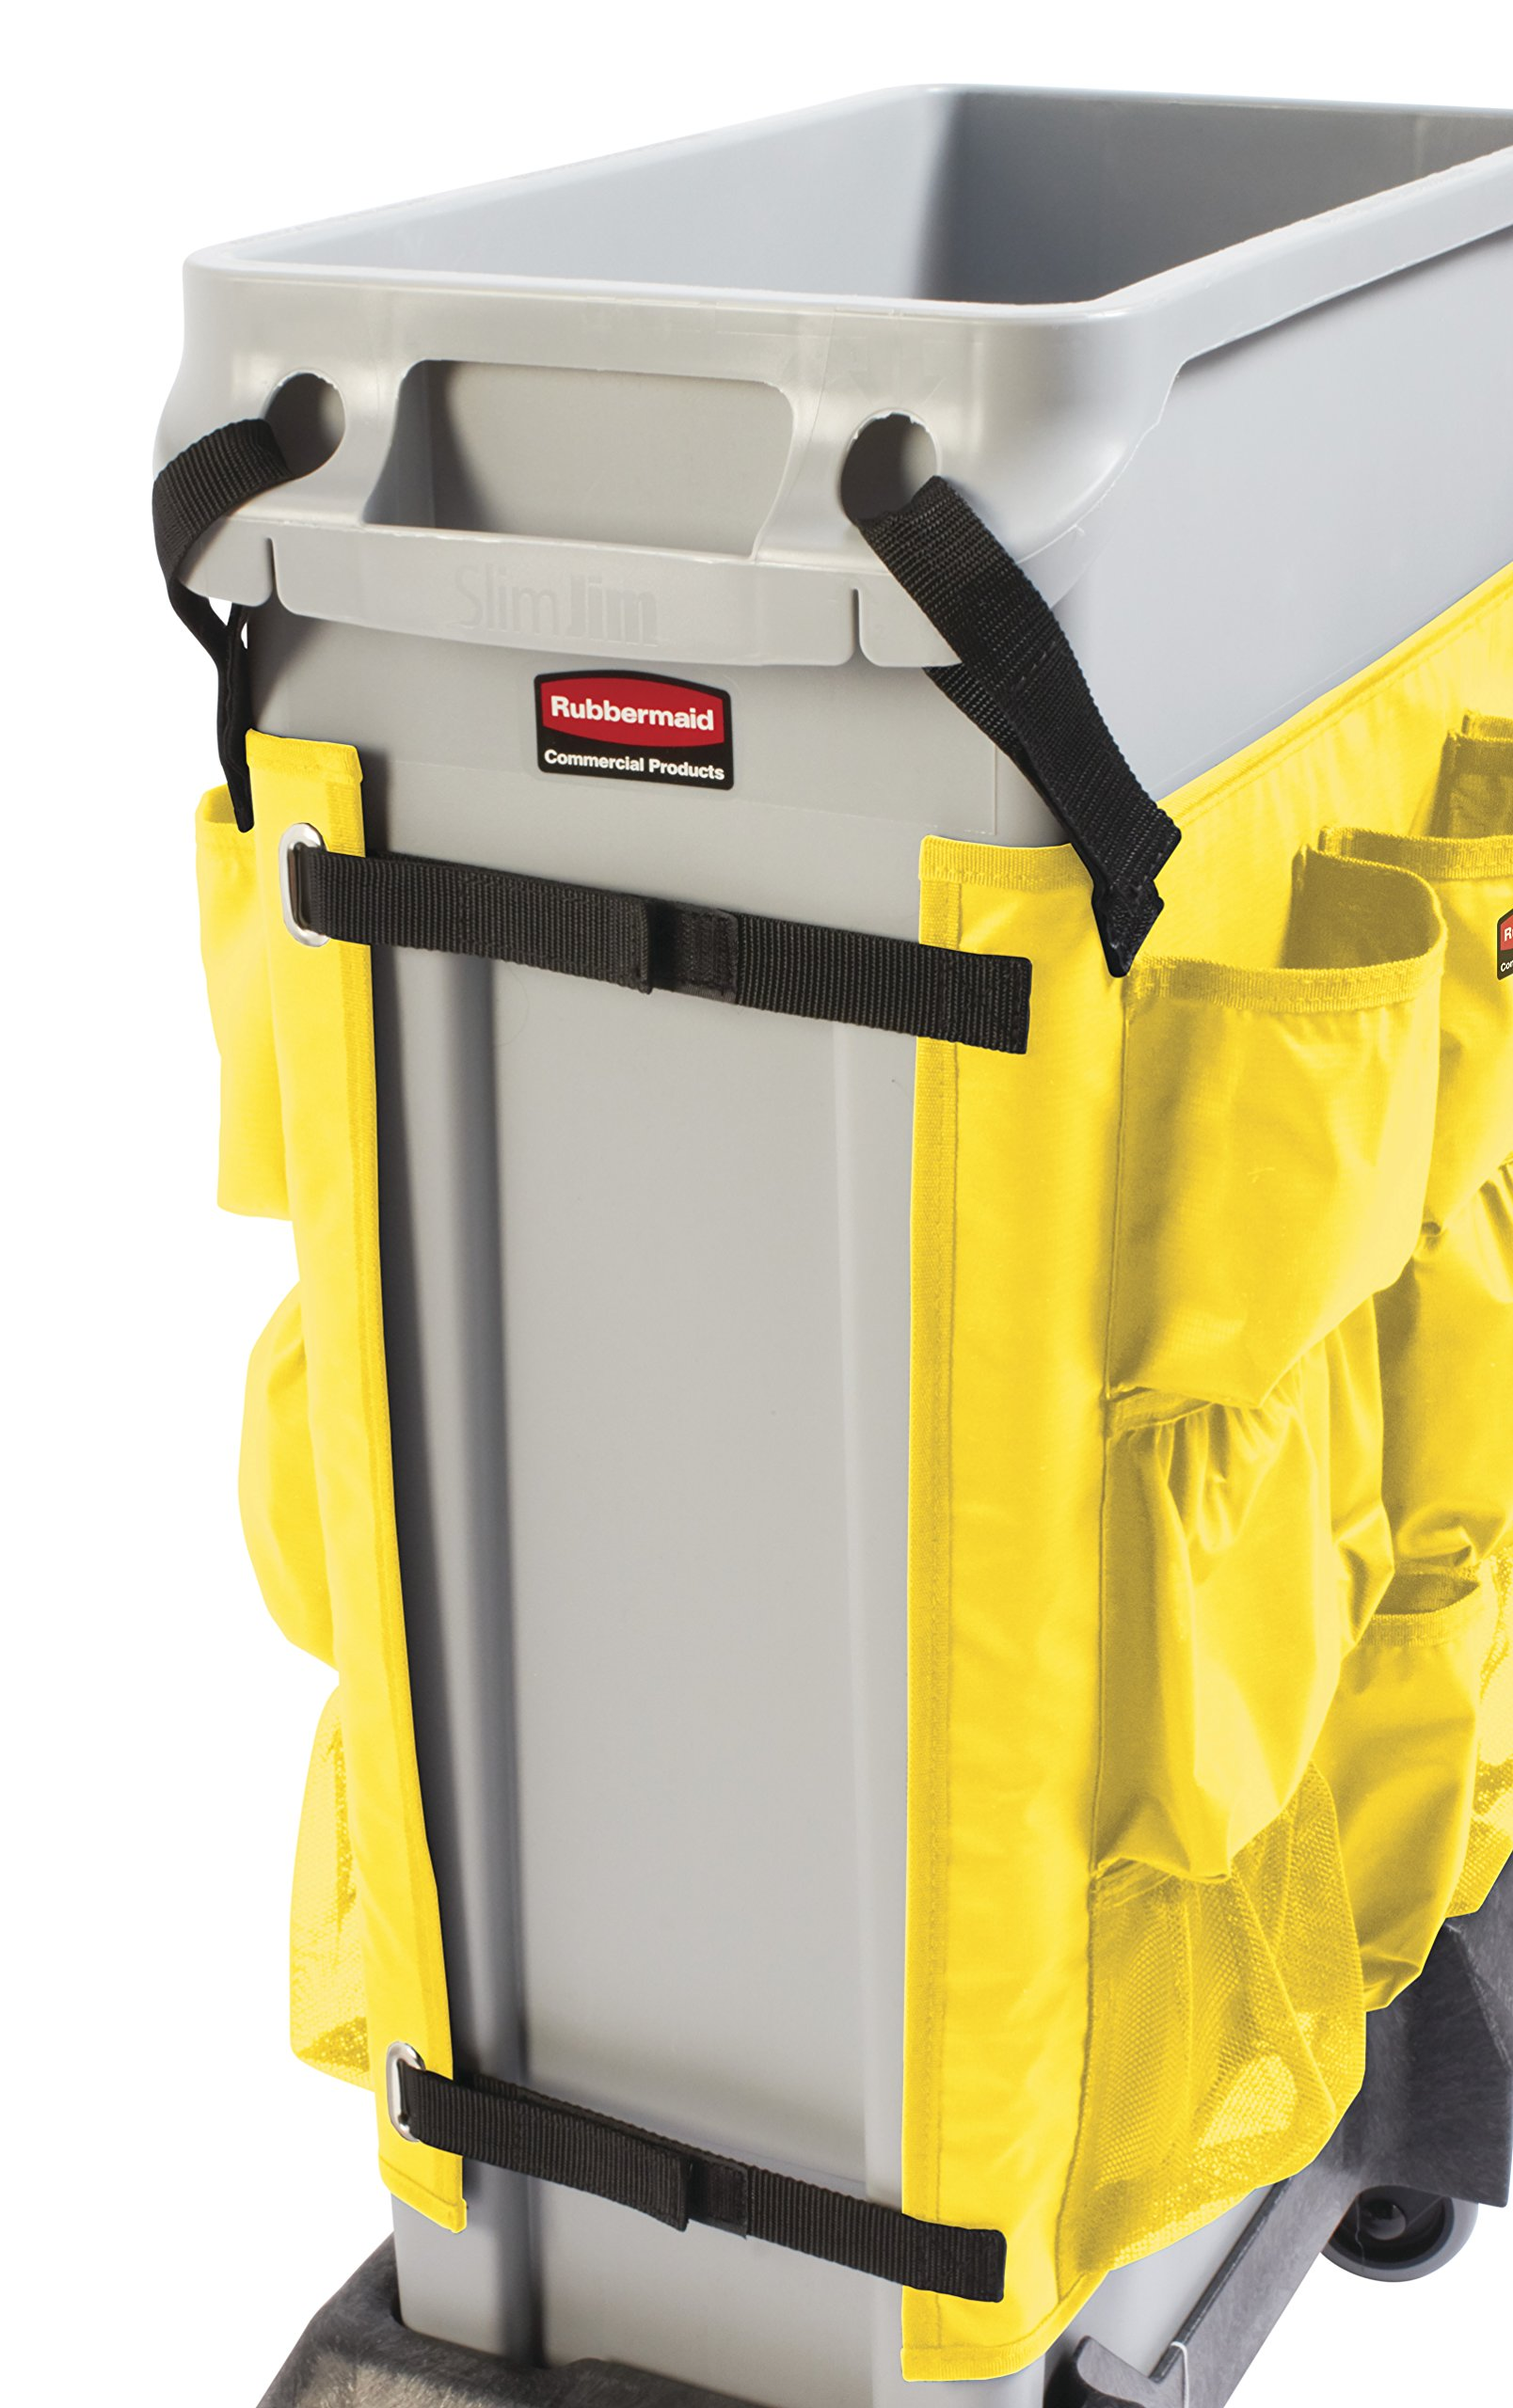 Rubbermaid Commercial Products 2032951 Slim Jim Caddy Bag for 23 gal, Yellow by Rubbermaid Commercial Products (Image #6)